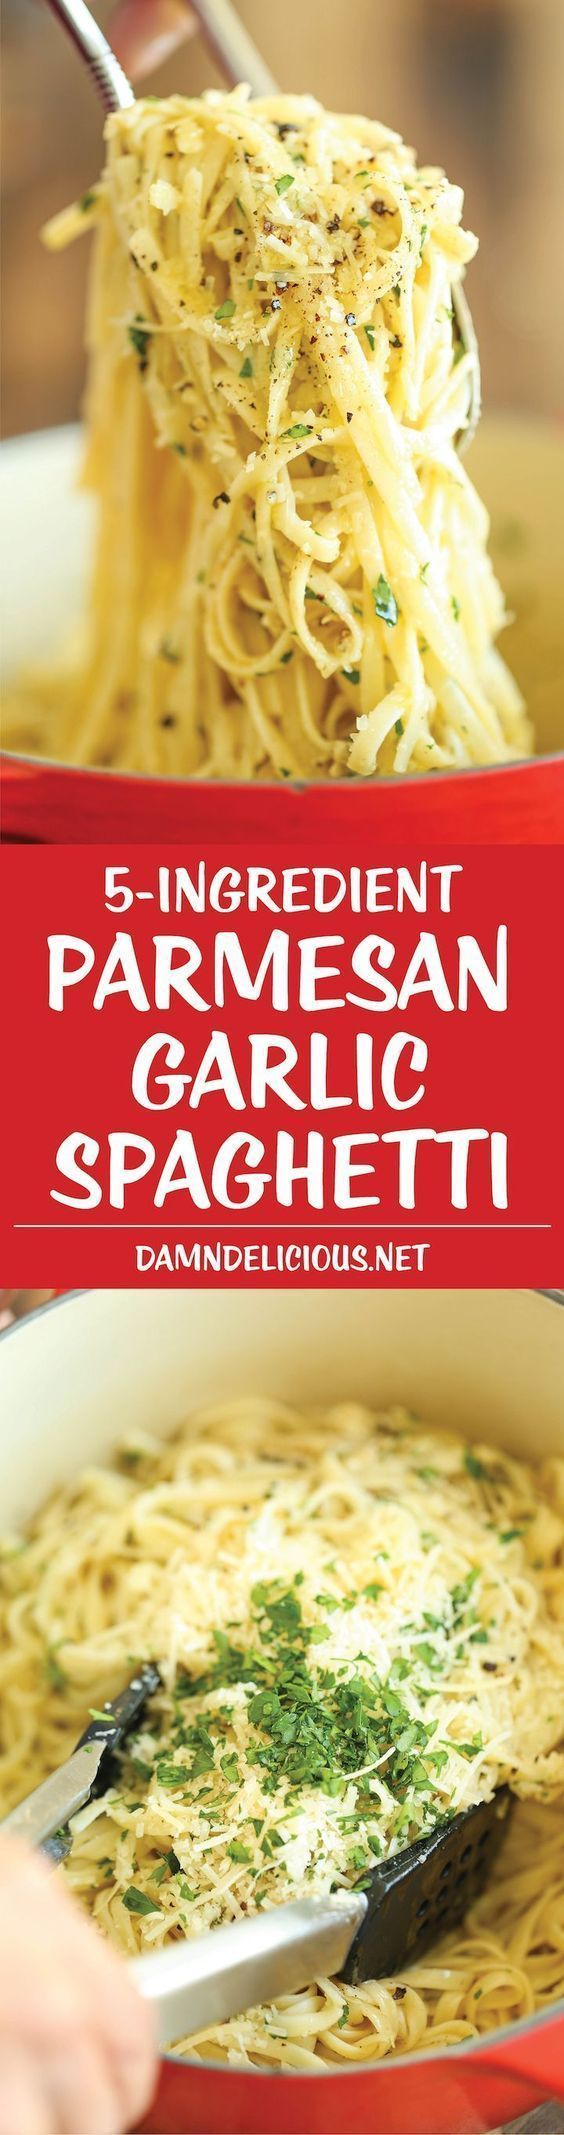 5 ingredients. 20 minutes. With melted butter, garlic and freshly grated Parmesan. A winning combination for the ENTIRE family!